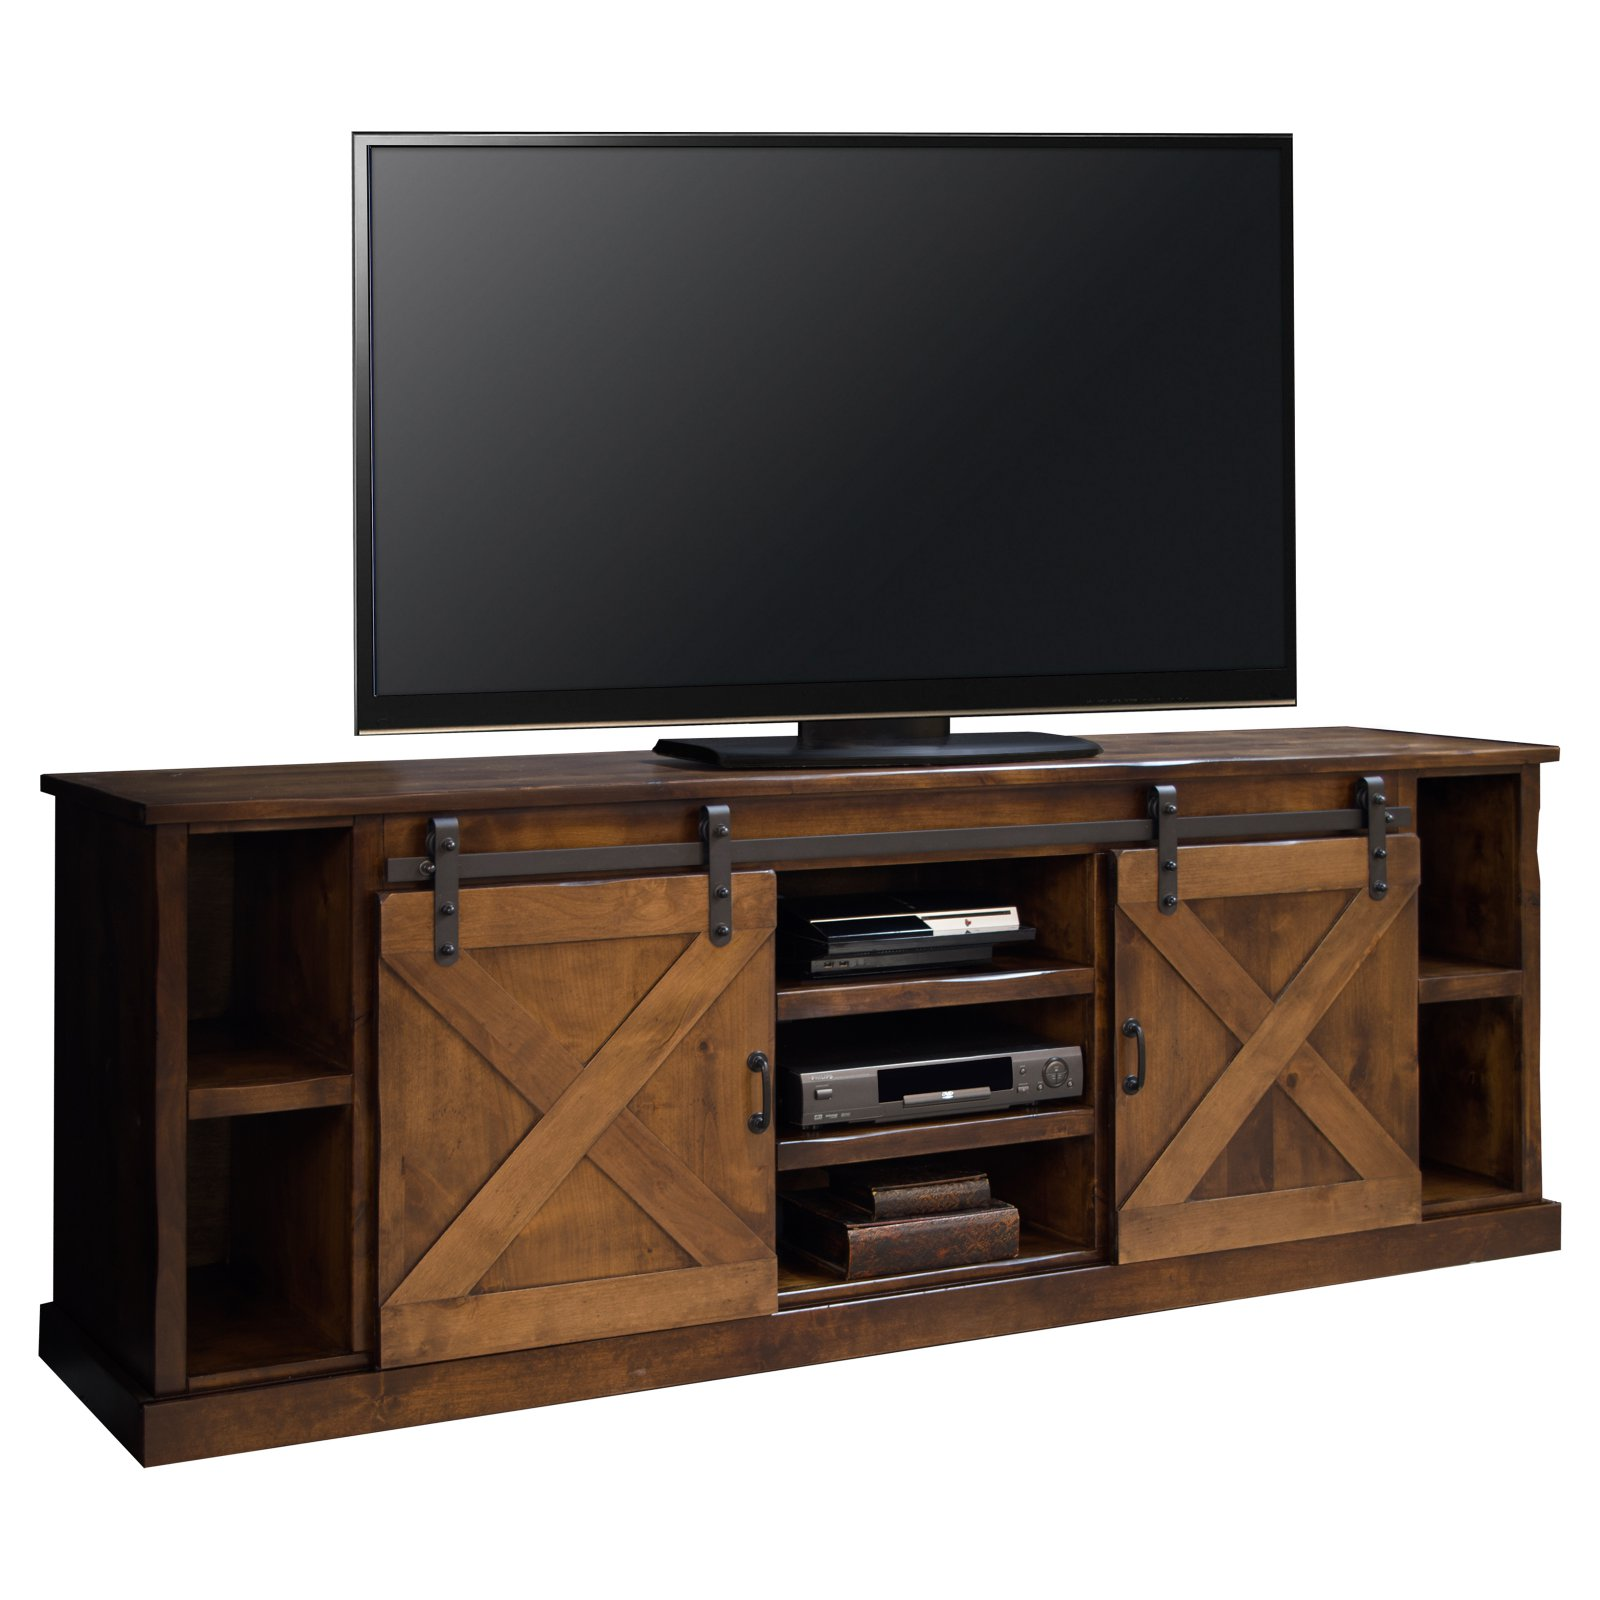 Legends Furniture Farmhouse Oak Entertainment Center